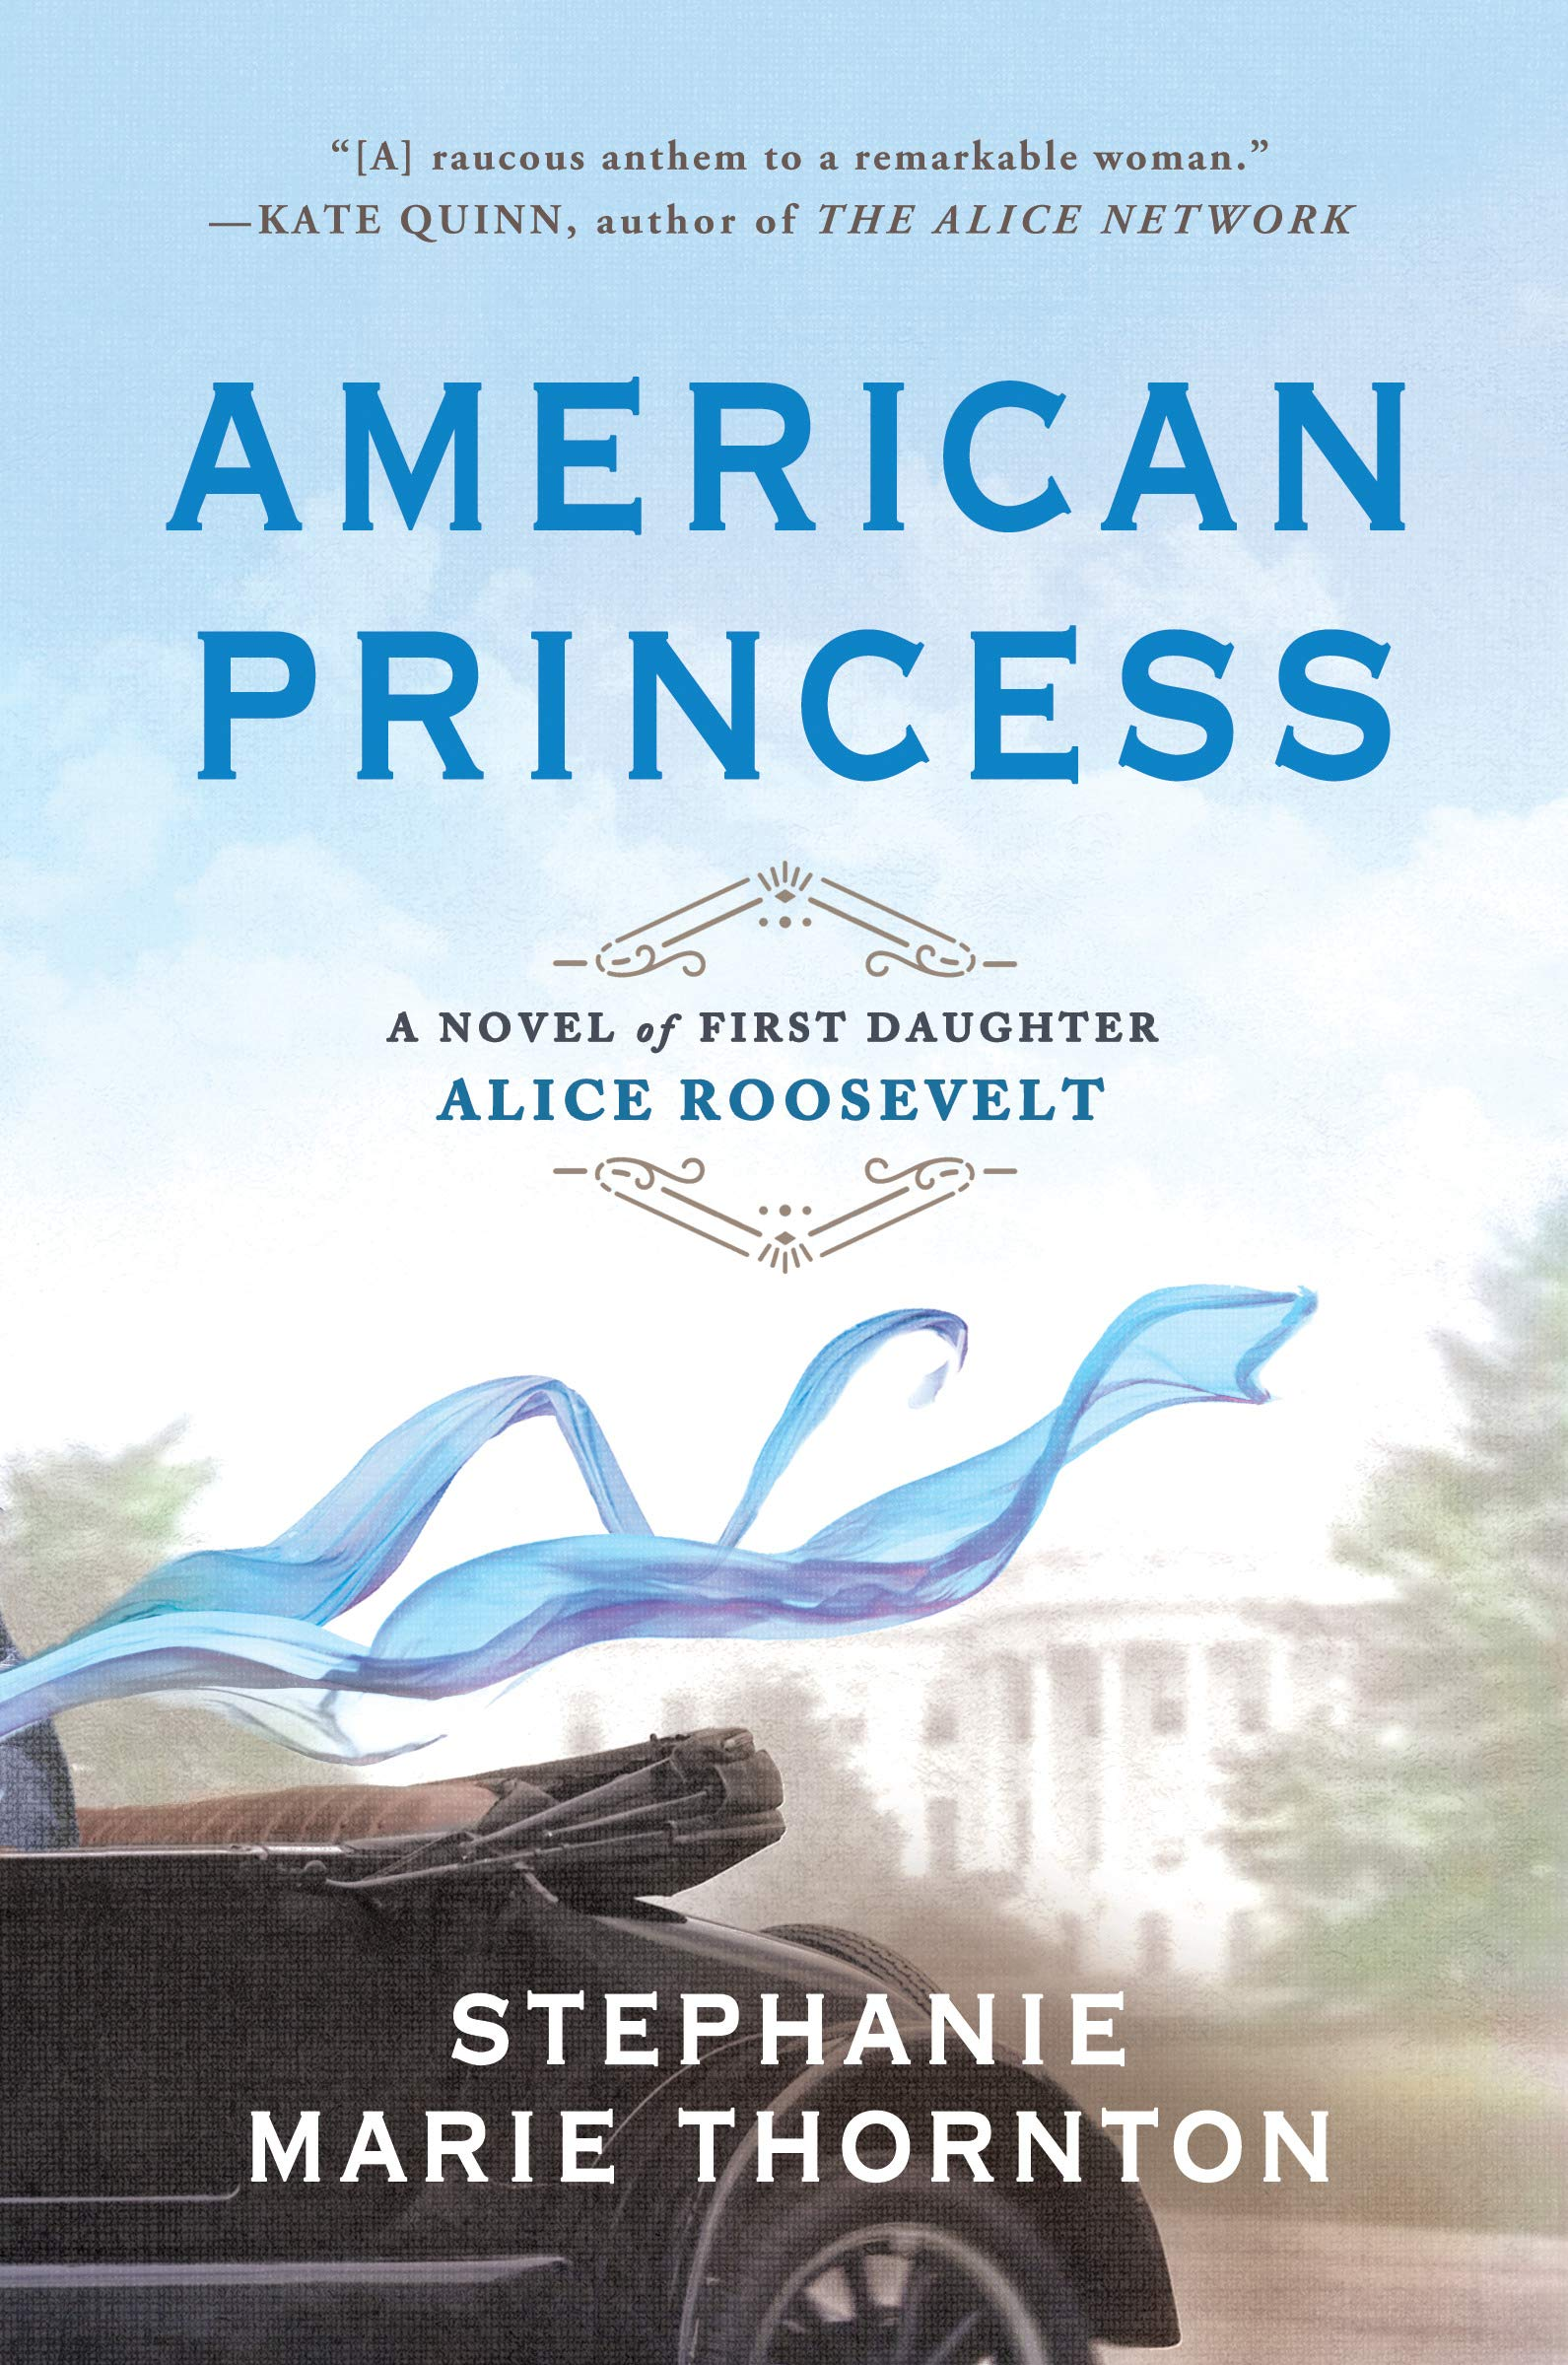 Image result for book cover american princess stephanie marie thornton